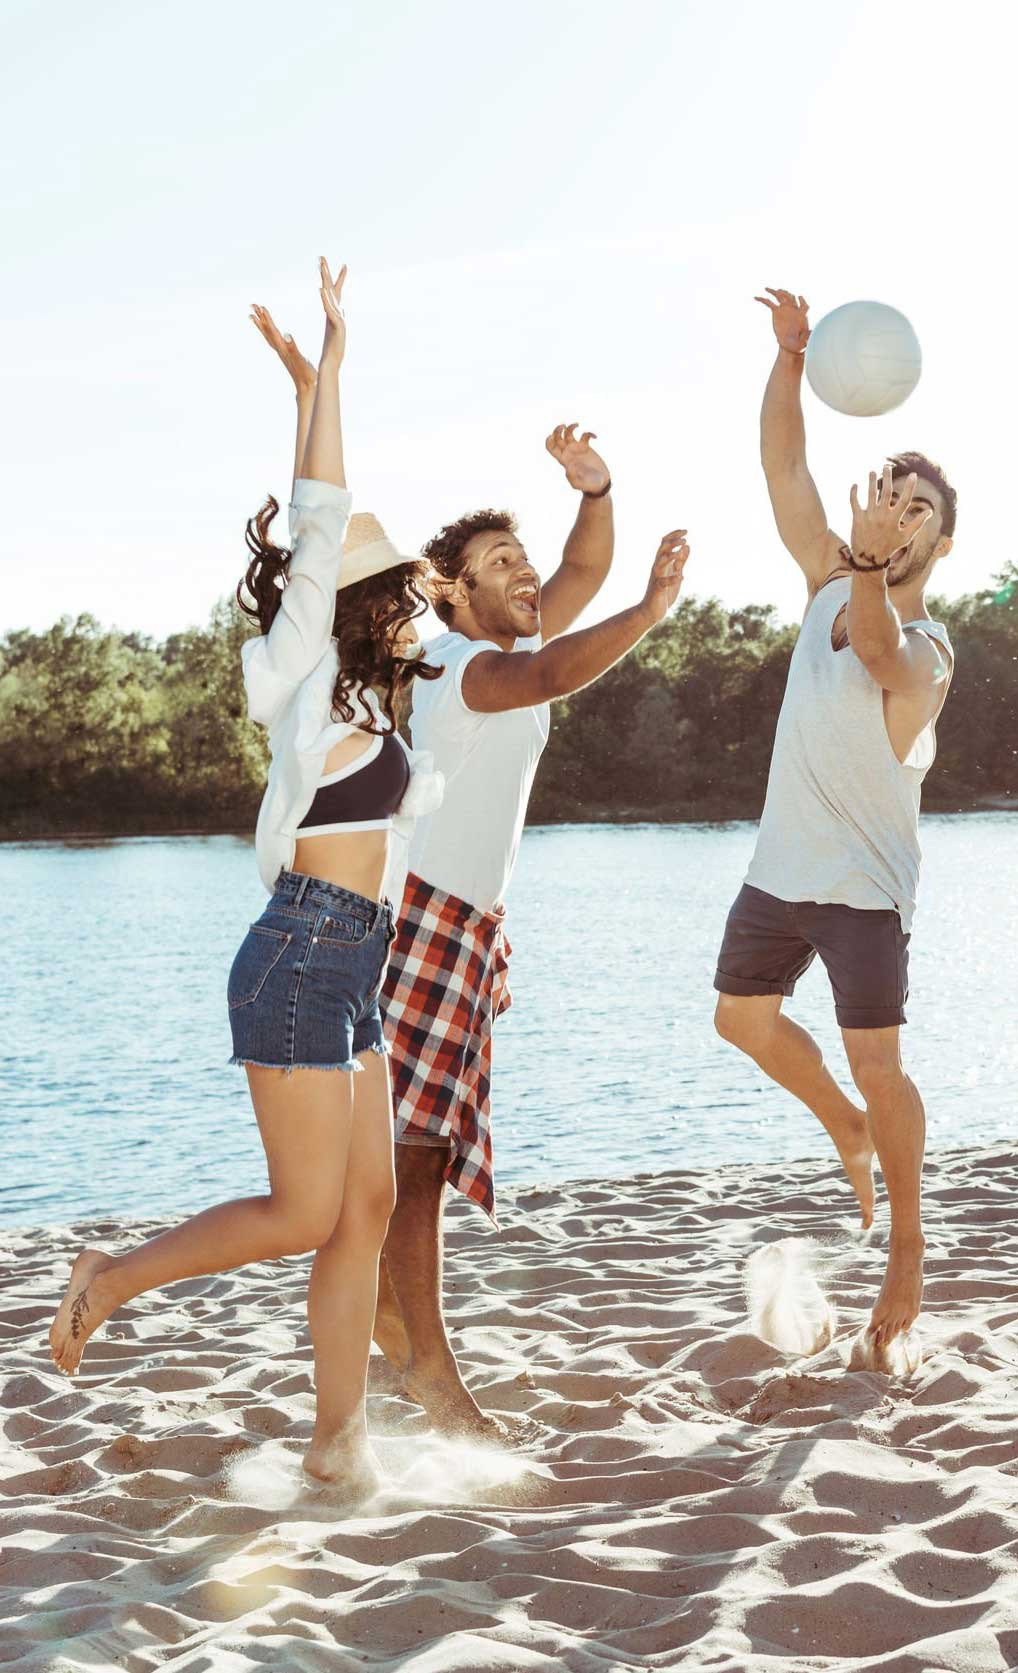 Friends playing volleyball on sandy